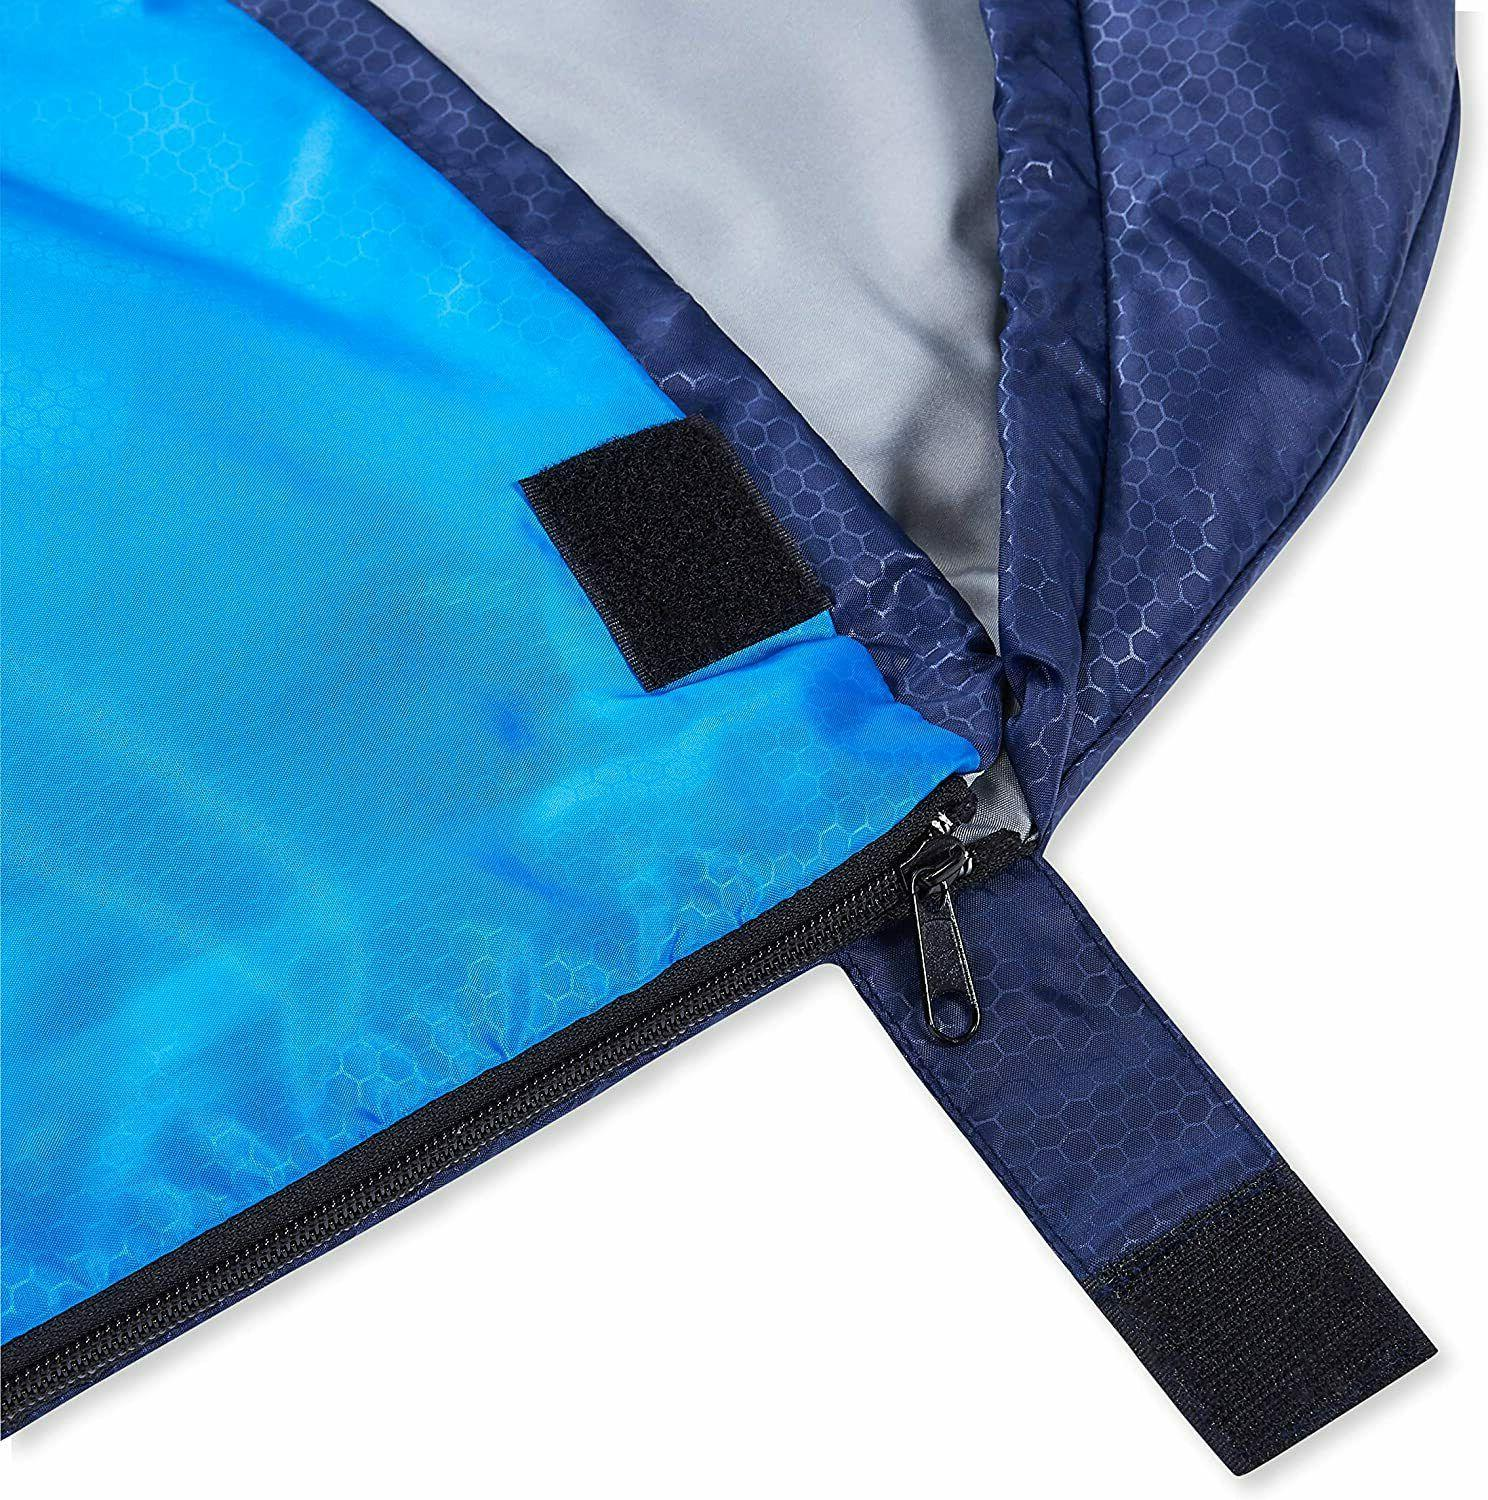 Camping Sleeping for Adults Camping Equipment